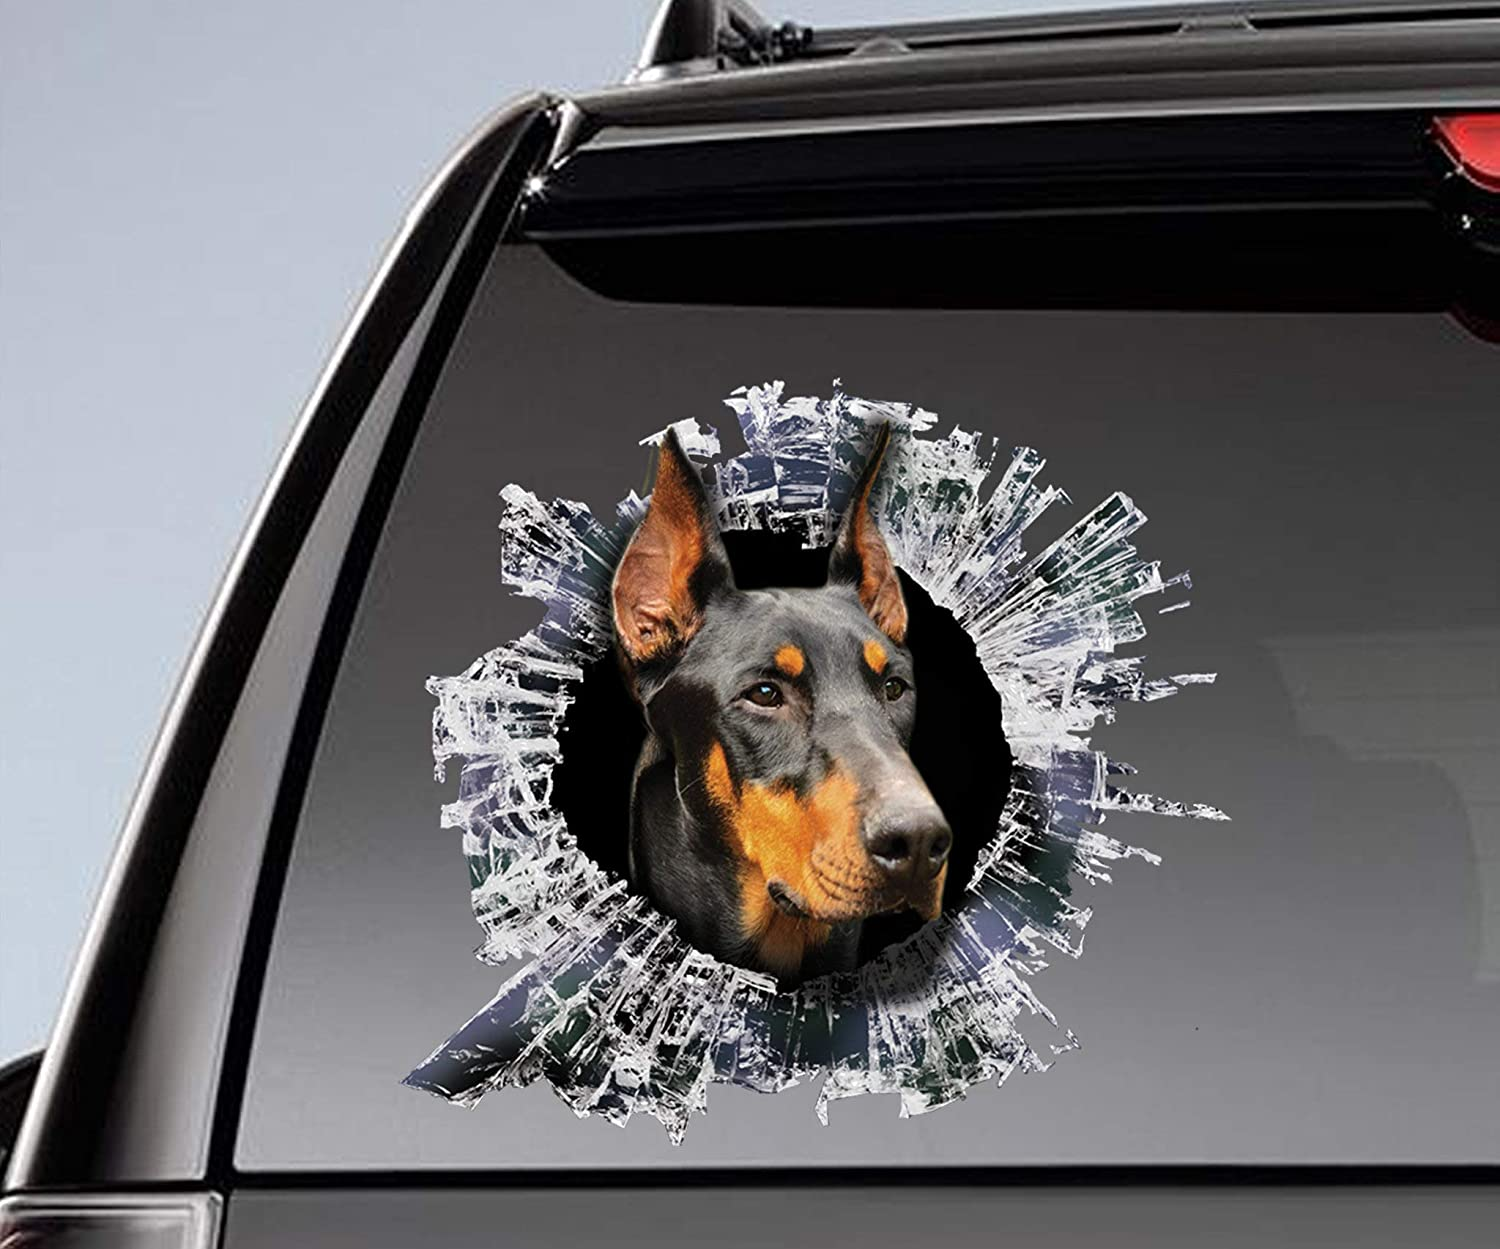 McC538arthy Decal Stickers for Cars Funny Window Decals Sticker Chihuahua Window Sticker Car Sticker Chihuahua Car Decal Self Adhesive Window Sticker for Van Truck Vehicle